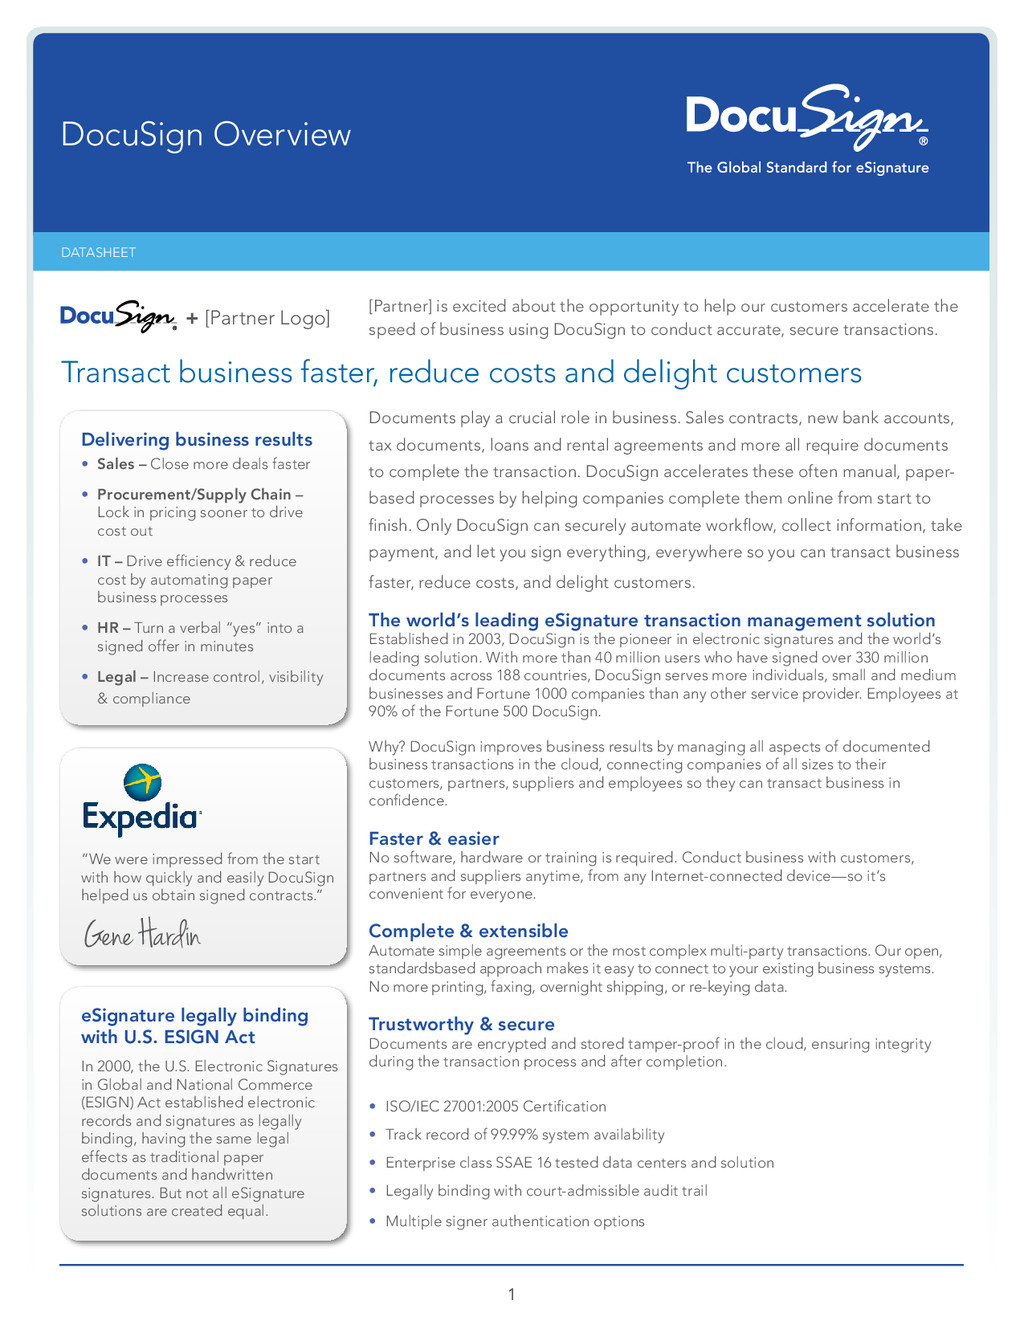 1 DATASHEET DocuSign Overview Documents play a ...